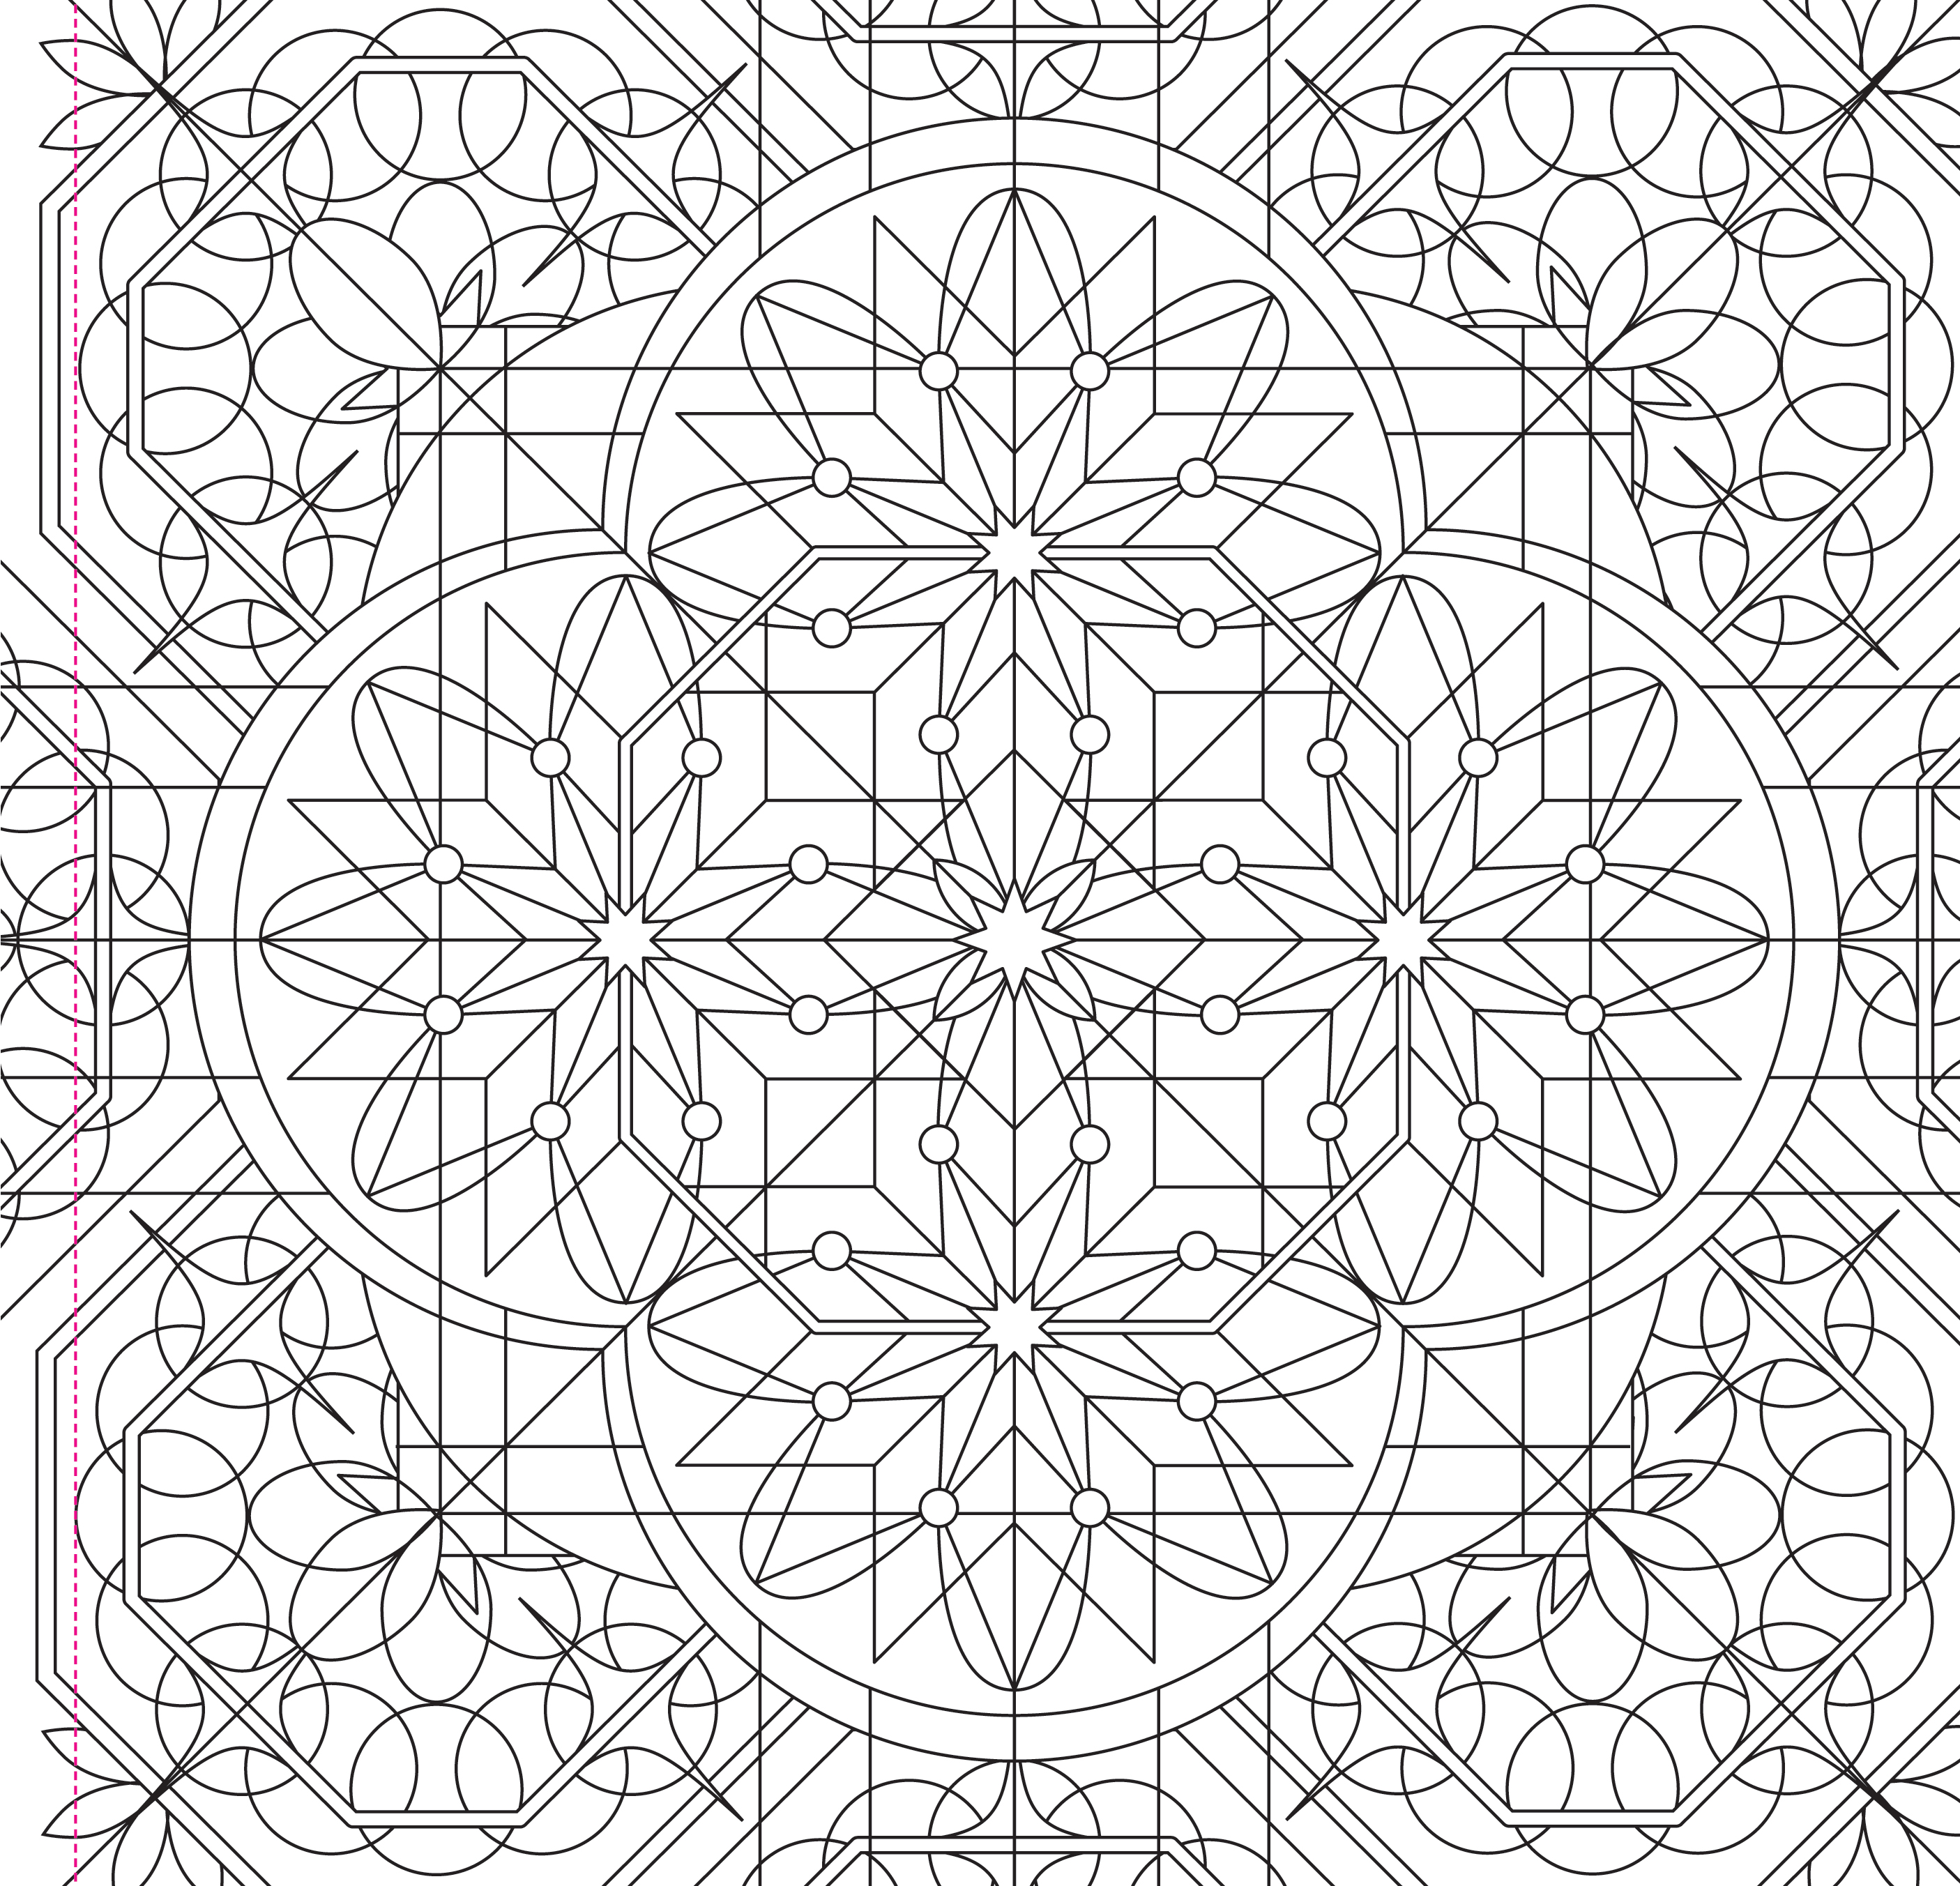 kaleidoscope designs free coloring pages - photo#41